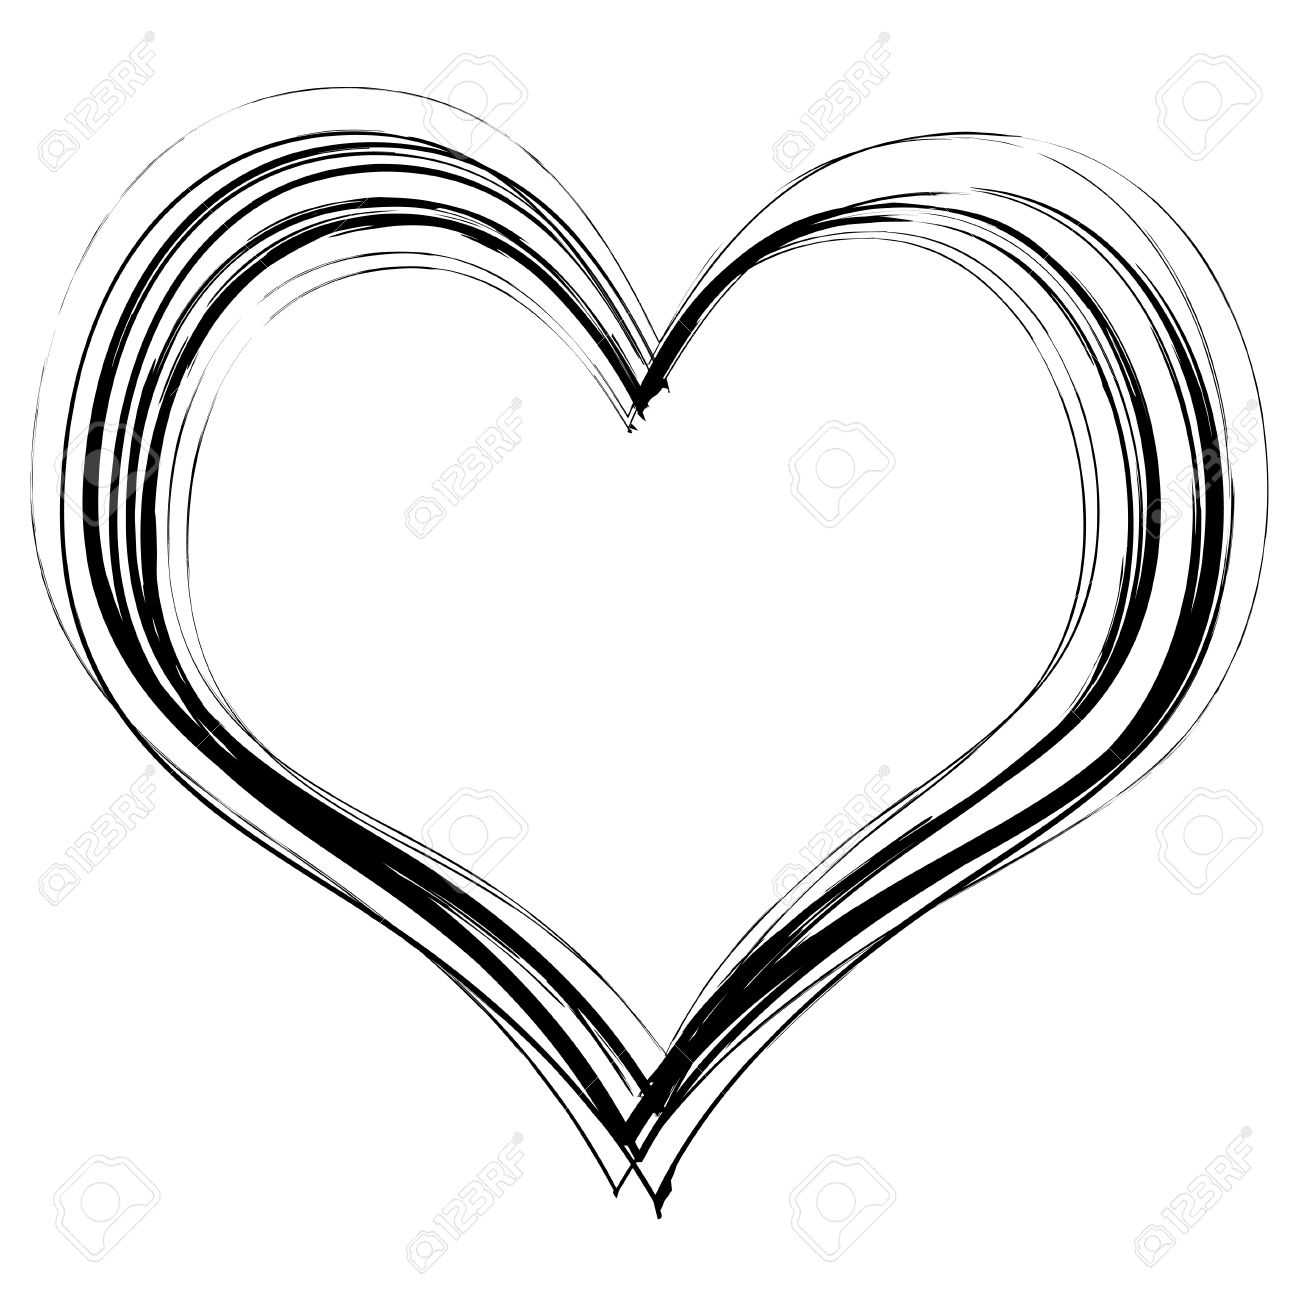 1300x1300 Black White Pencil Art Heart Picture I Love You Roses And Hearts